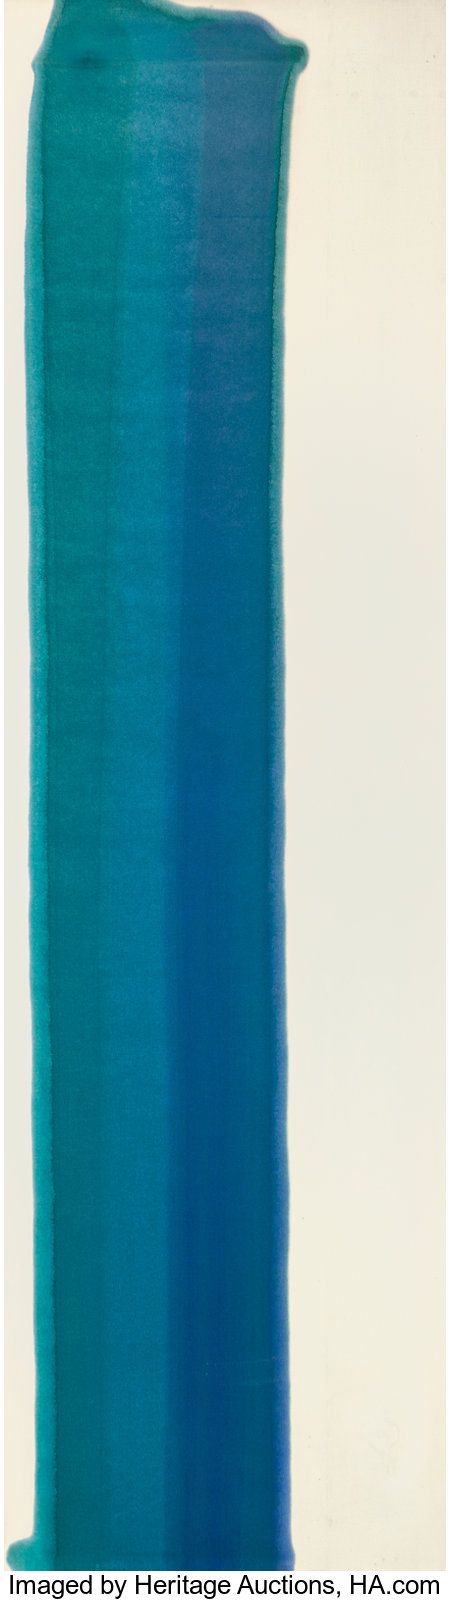 Morris Louis (1912-1962)Blue Pilaster II, 1960Acrylic resin (Magna) on canvas83 x 23-1/2 inches (210.8 x 59.7 cm)...